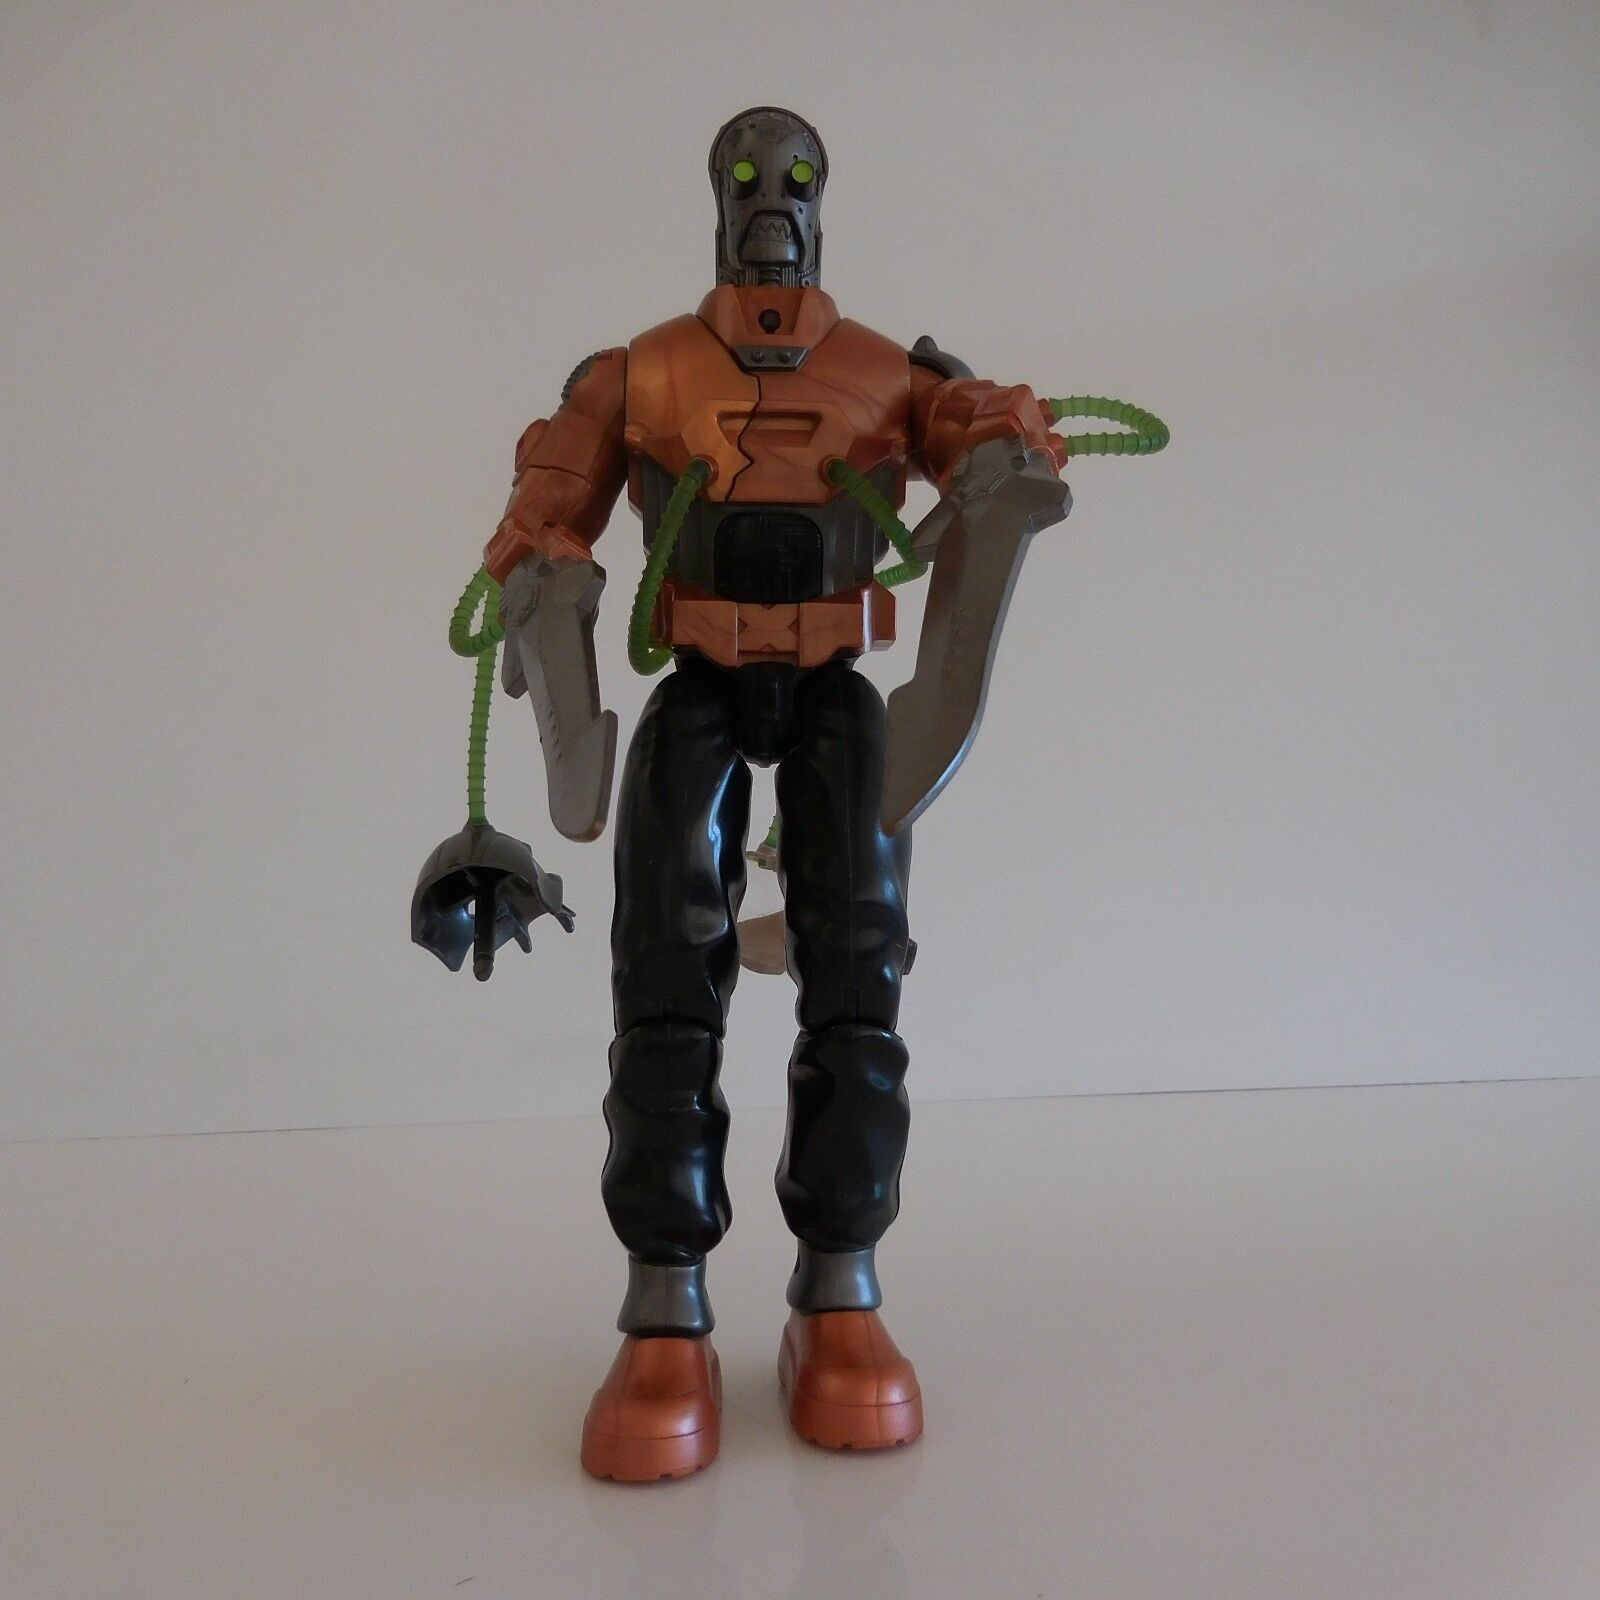 Transforming robot figurine 011 toys vintage collection